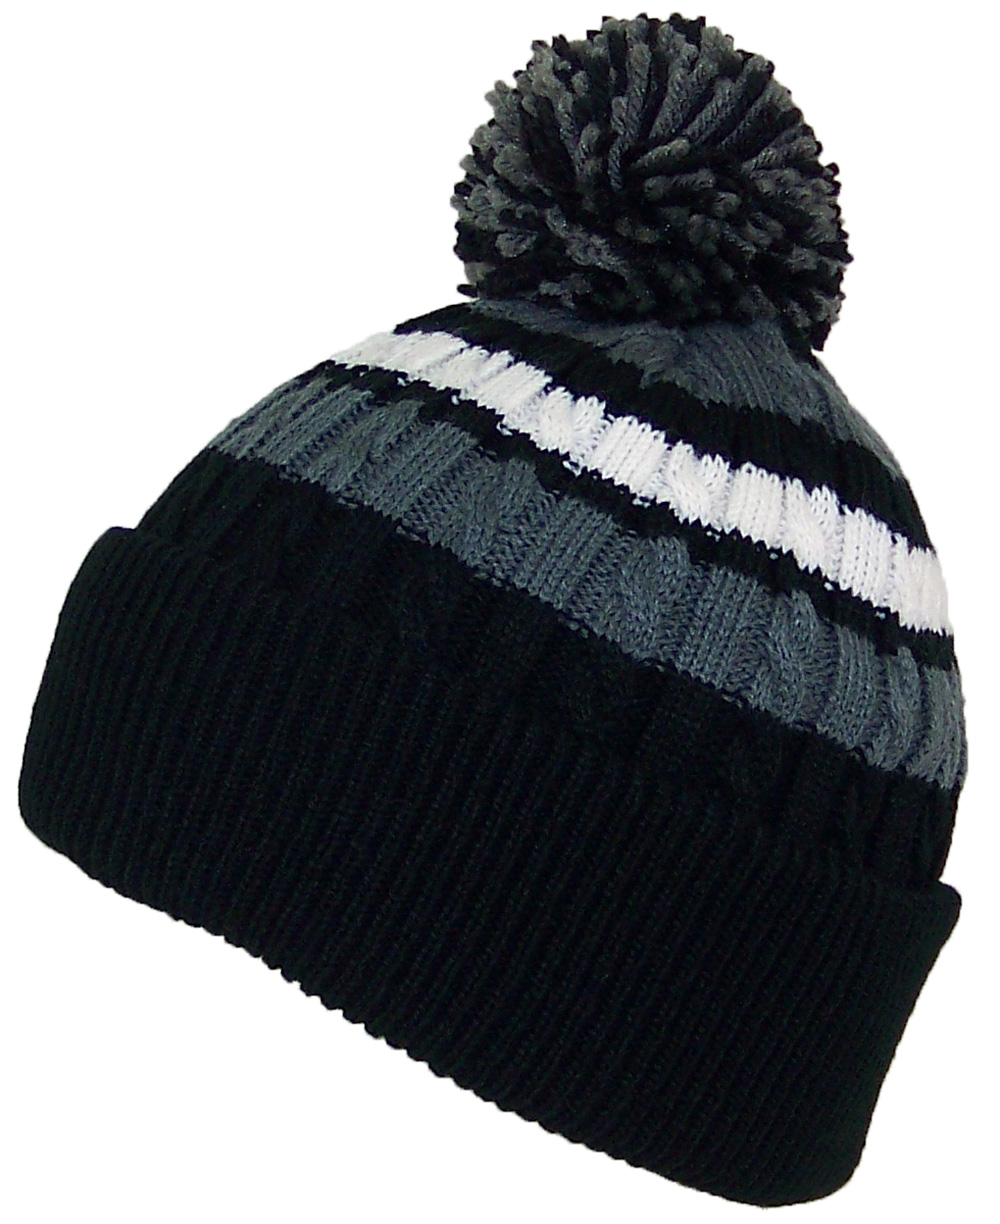 Best Winter Hats Quality Cable Knit Cuffed Winter Hat W/Large Pom Pom (Fits Large Heads)